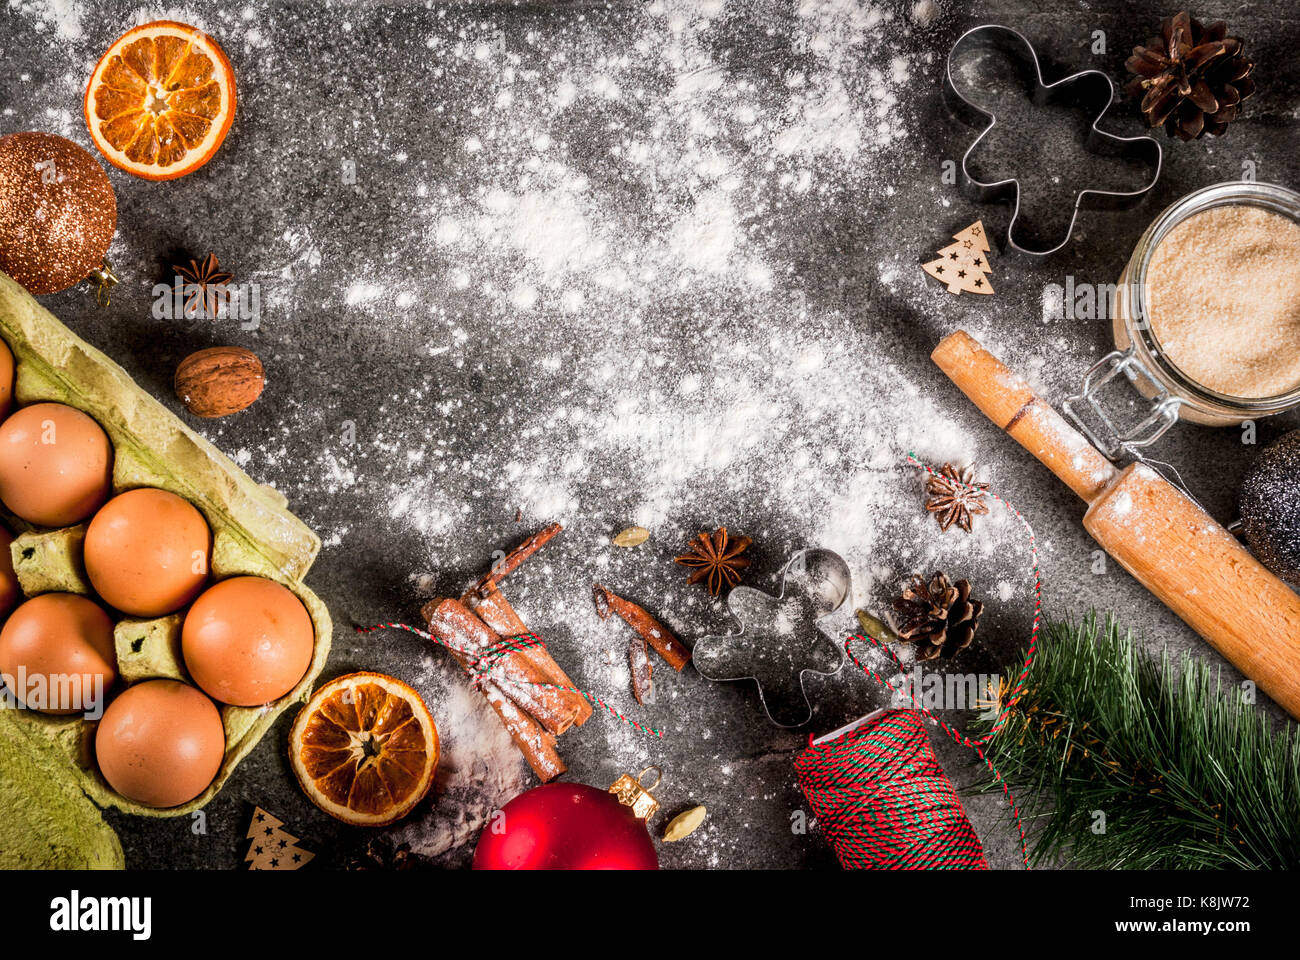 christmas new year holiday cooking background ingredients spices dried oranges and baking molds christmas decorations balls fir tree branch co